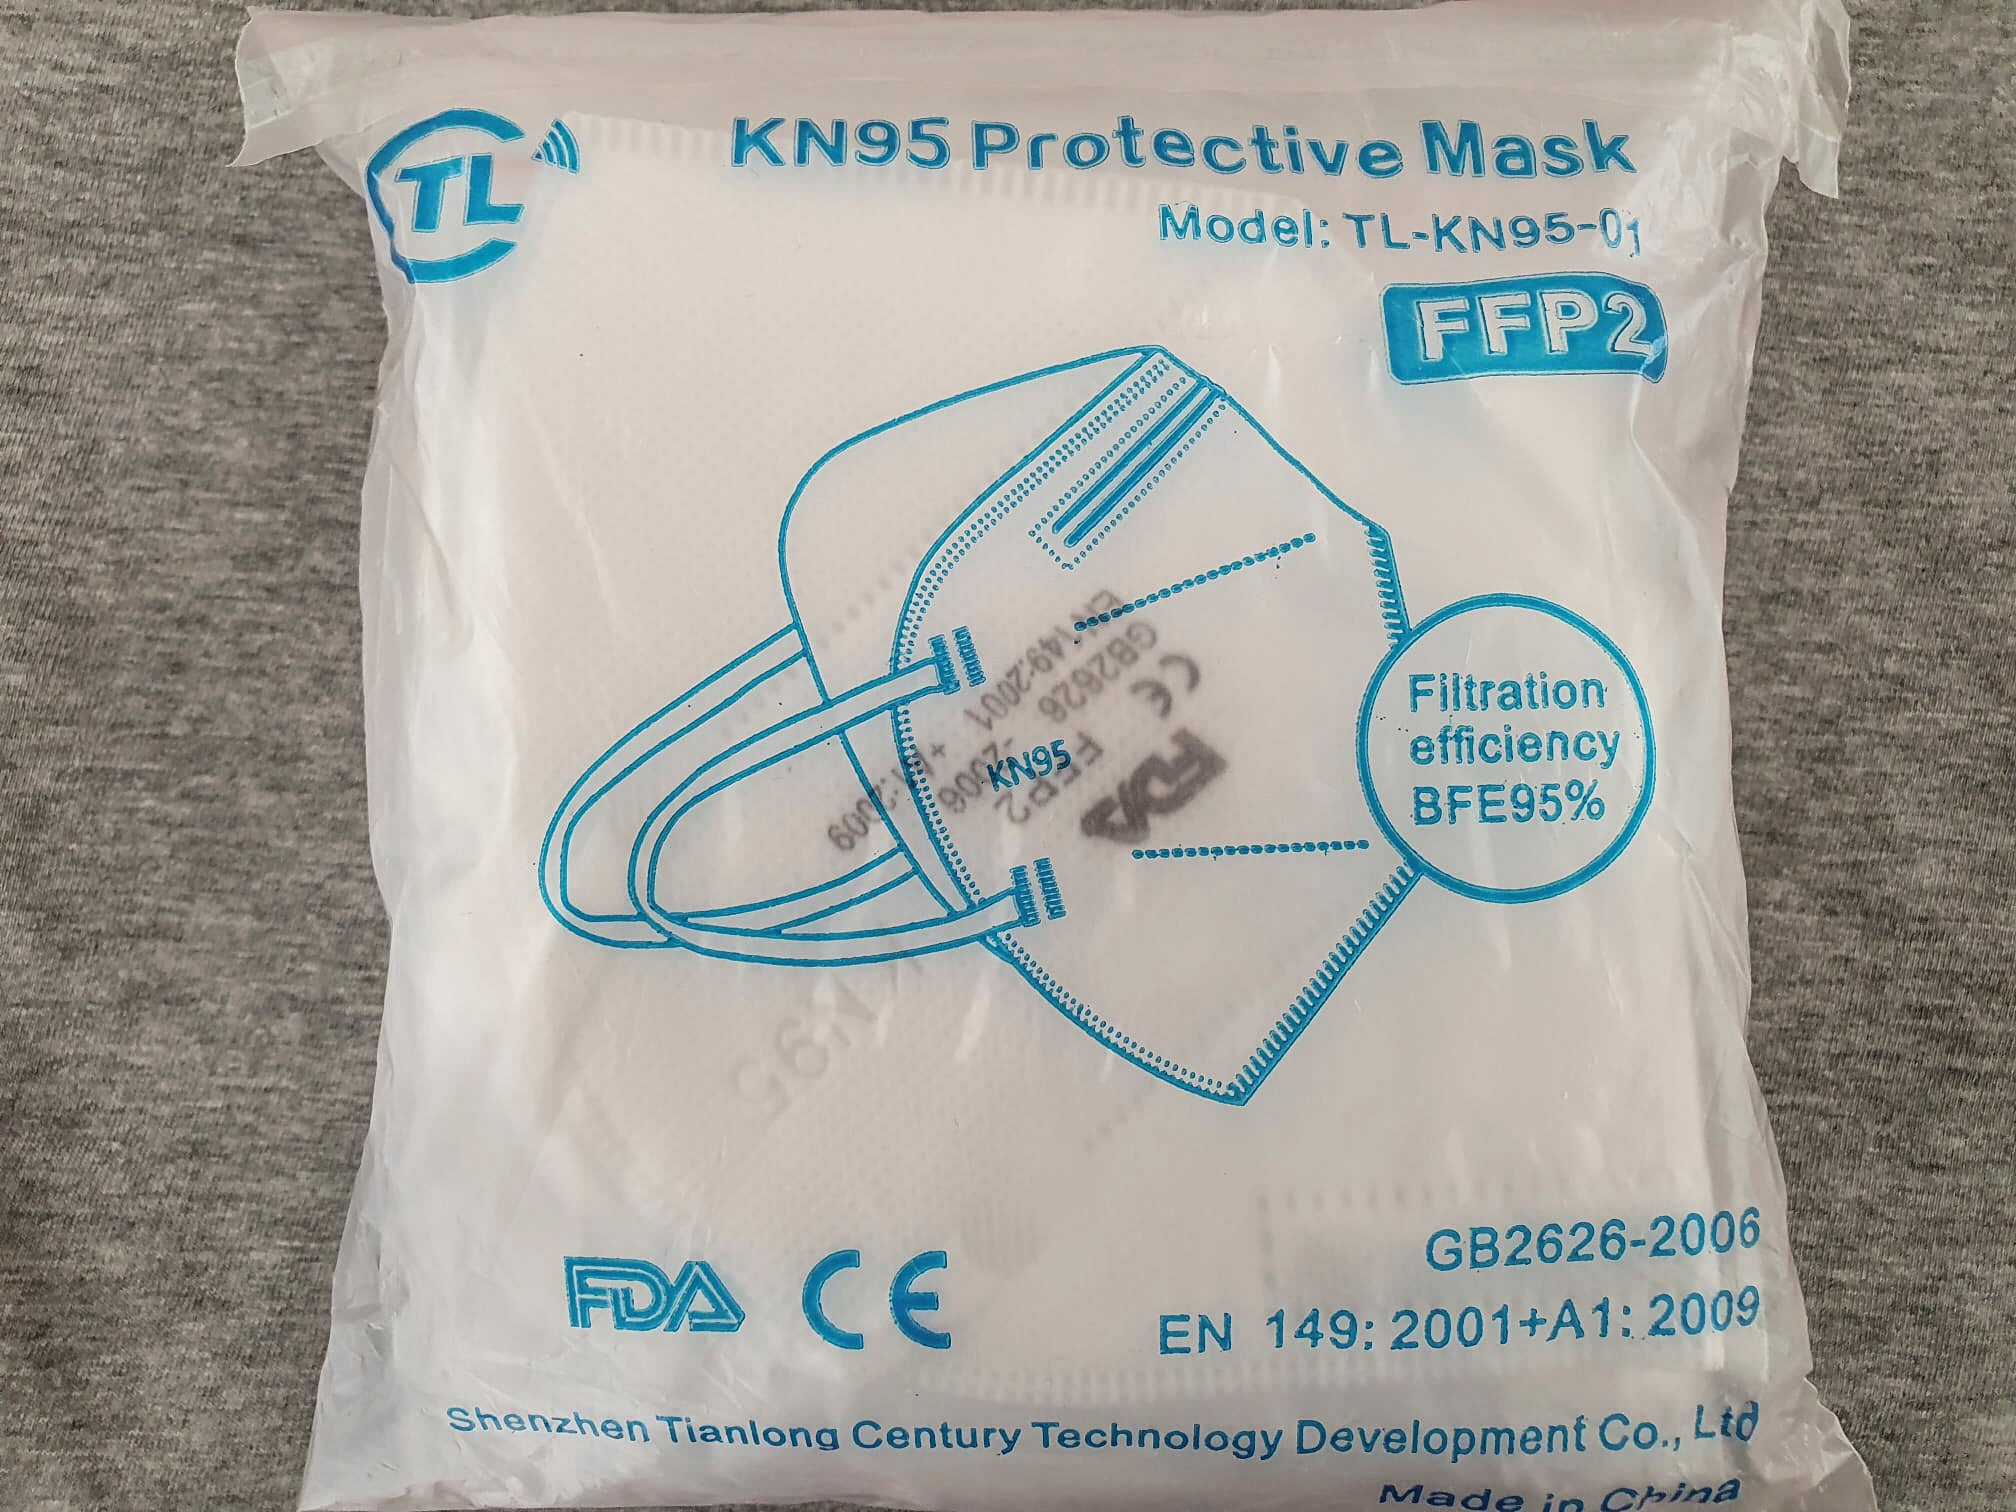 CE/FDA Certified FFP2 KN95 Face Mask EN 149:2001 + A1:2009 - pack of 50 - Switzerland only